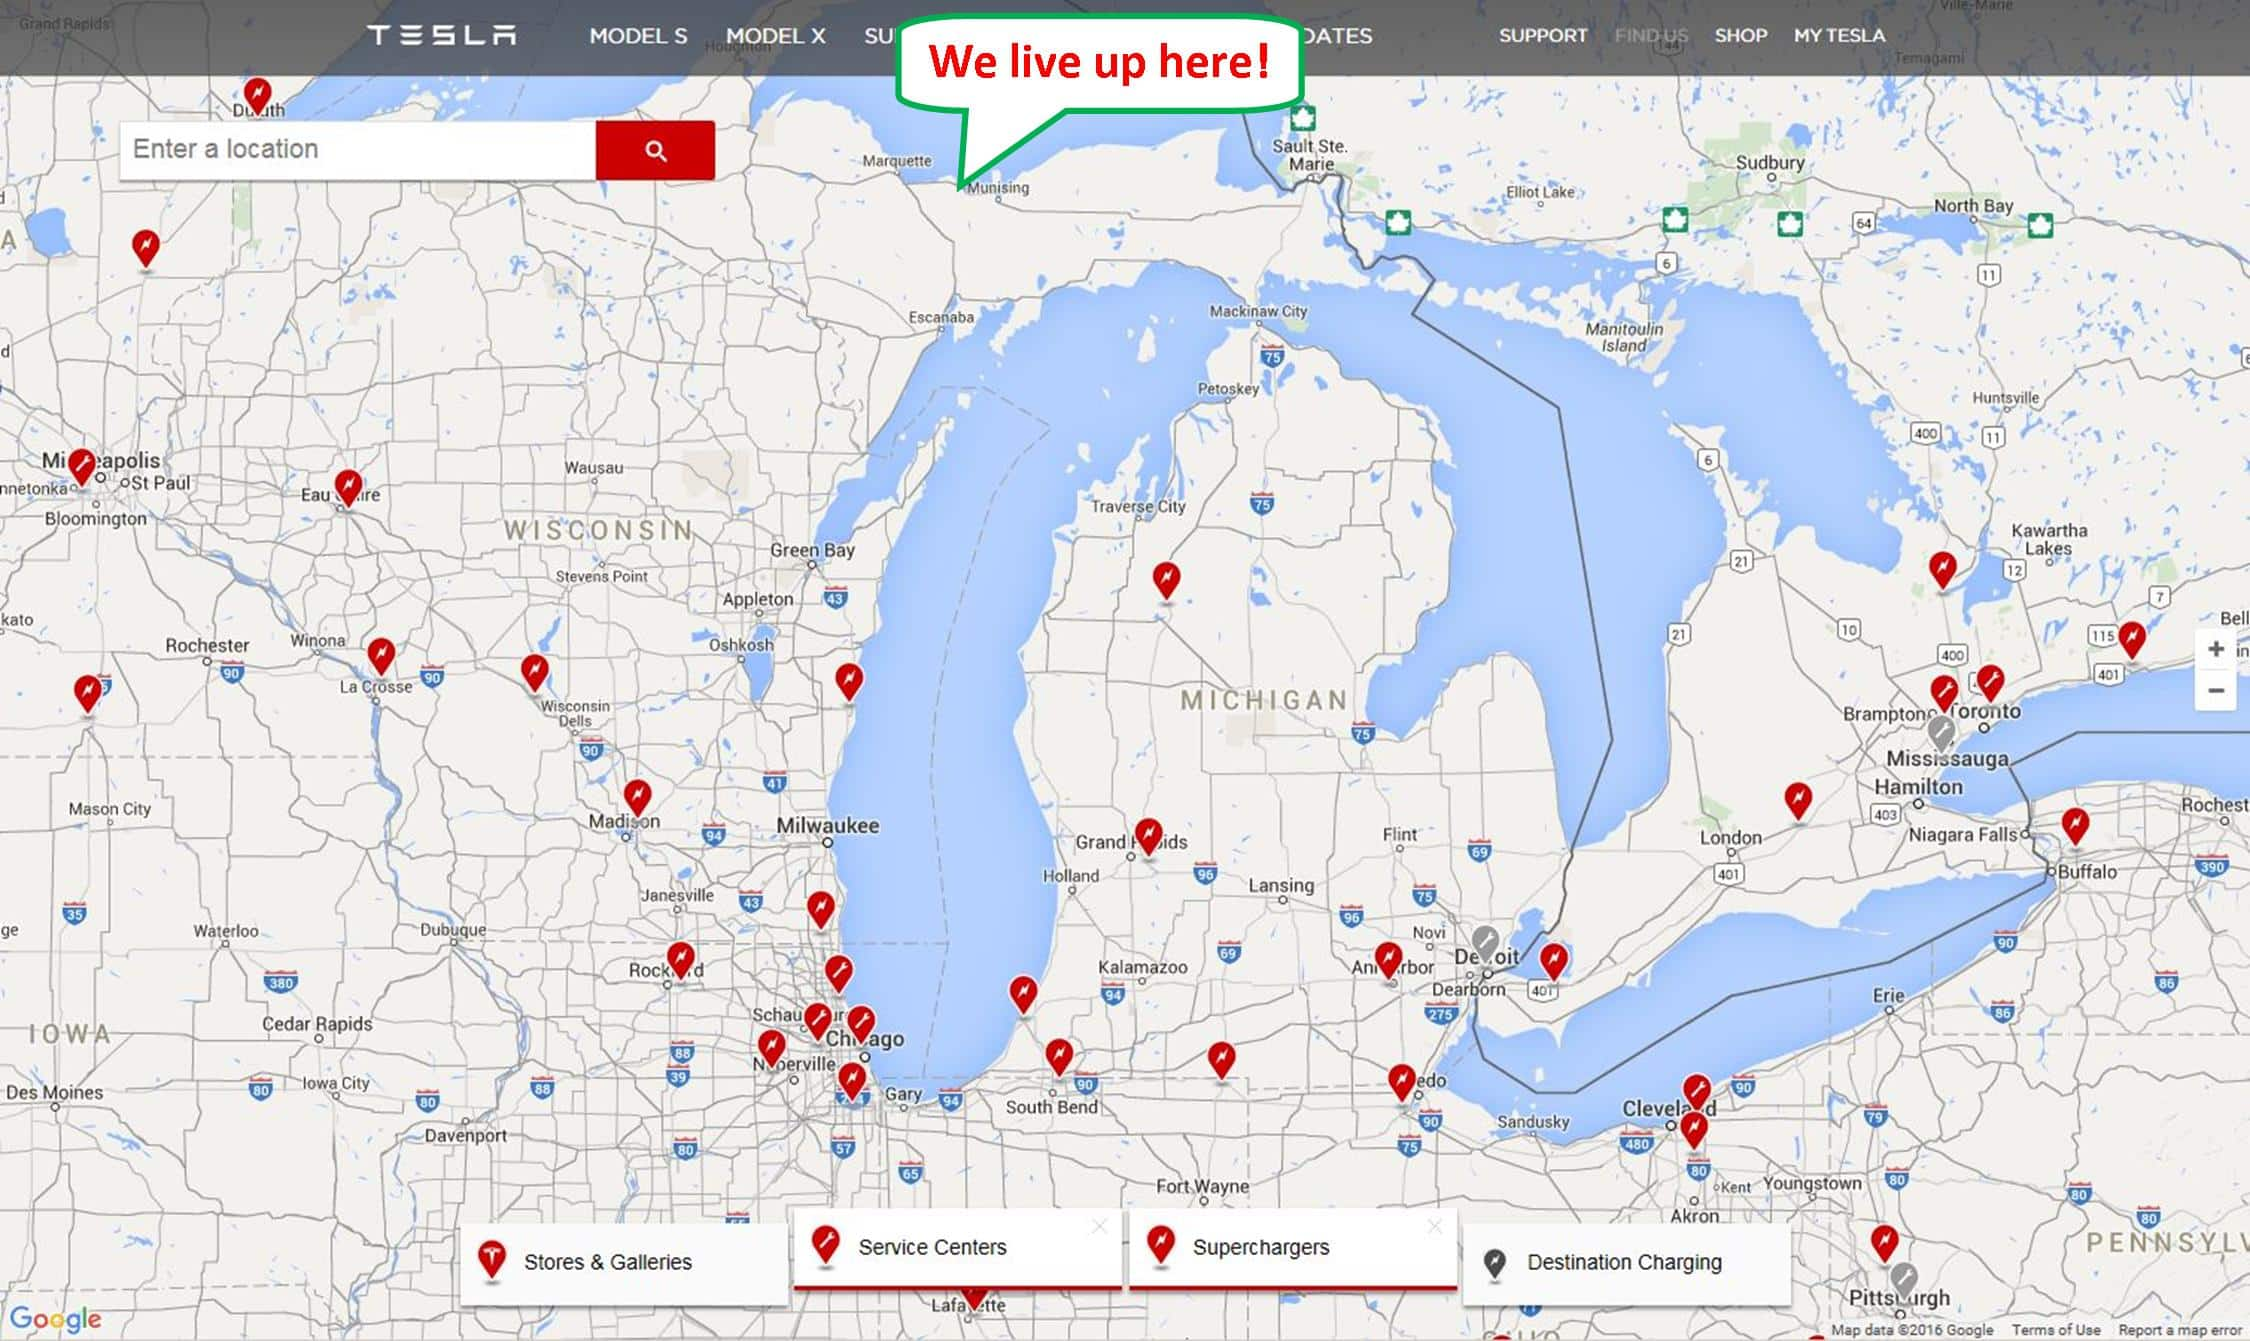 Tesla Supercharger Locations Illinois additionally Tesla Installs 100th Supercharger Station furthermore Tesla Firmware 5 9 Air Suspenson Hill Assist together with Tesla Supercharger Locations 2014 2015 further Tesla To Expand Free Charging Stations Nationwide But Not Its Dealerships. on tesla supercharger locations map